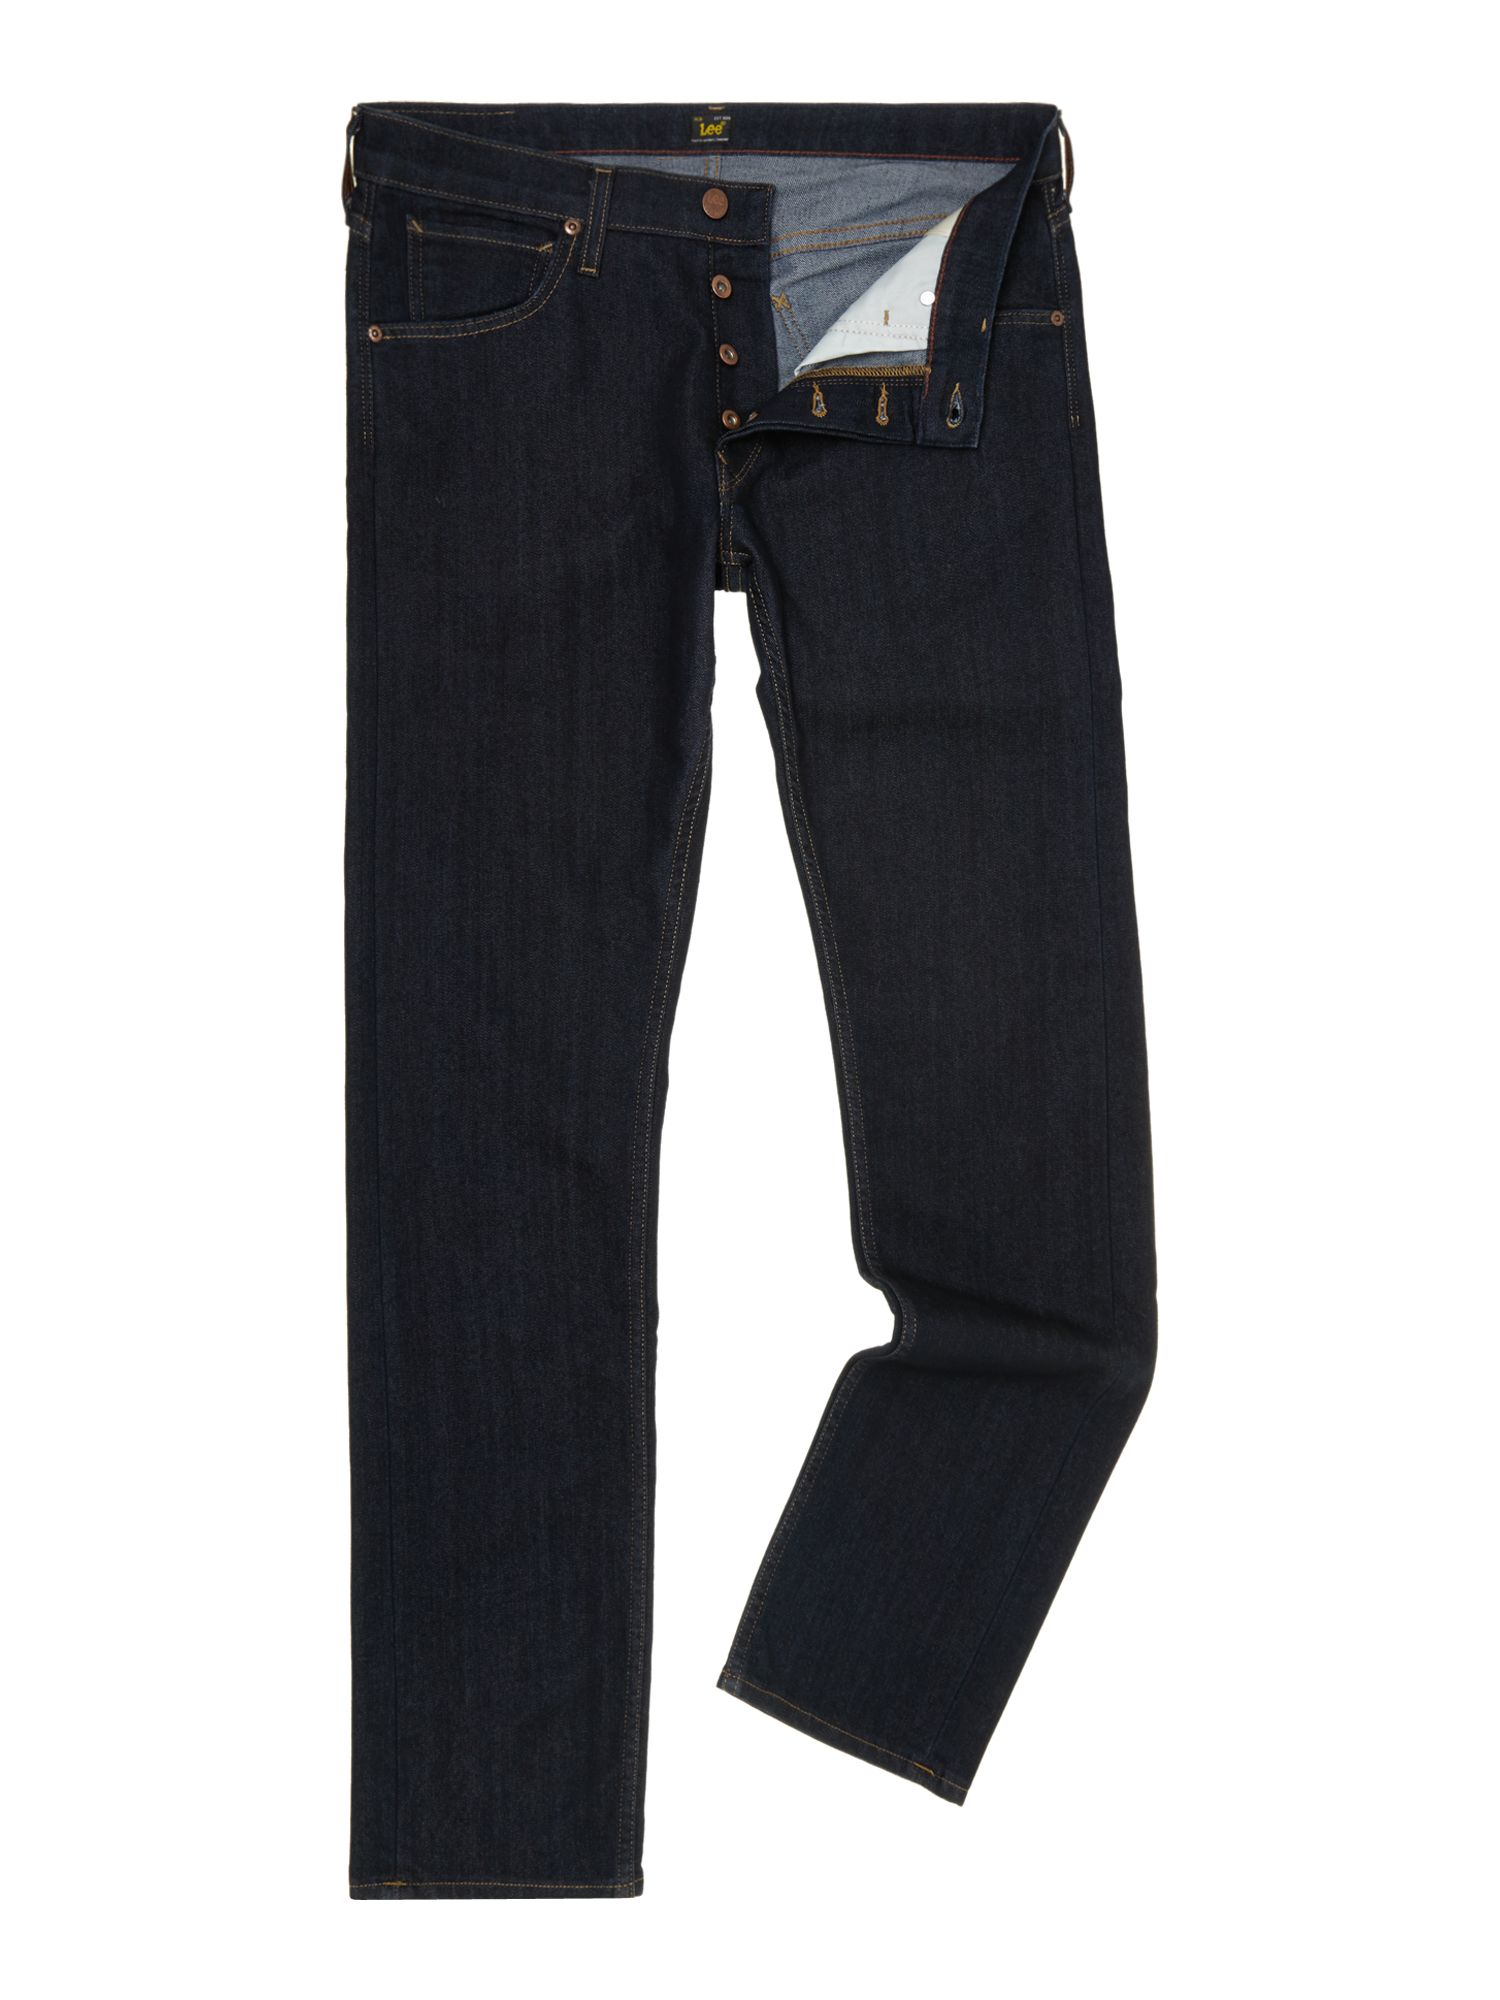 Daren regular fit rinse wash jeans